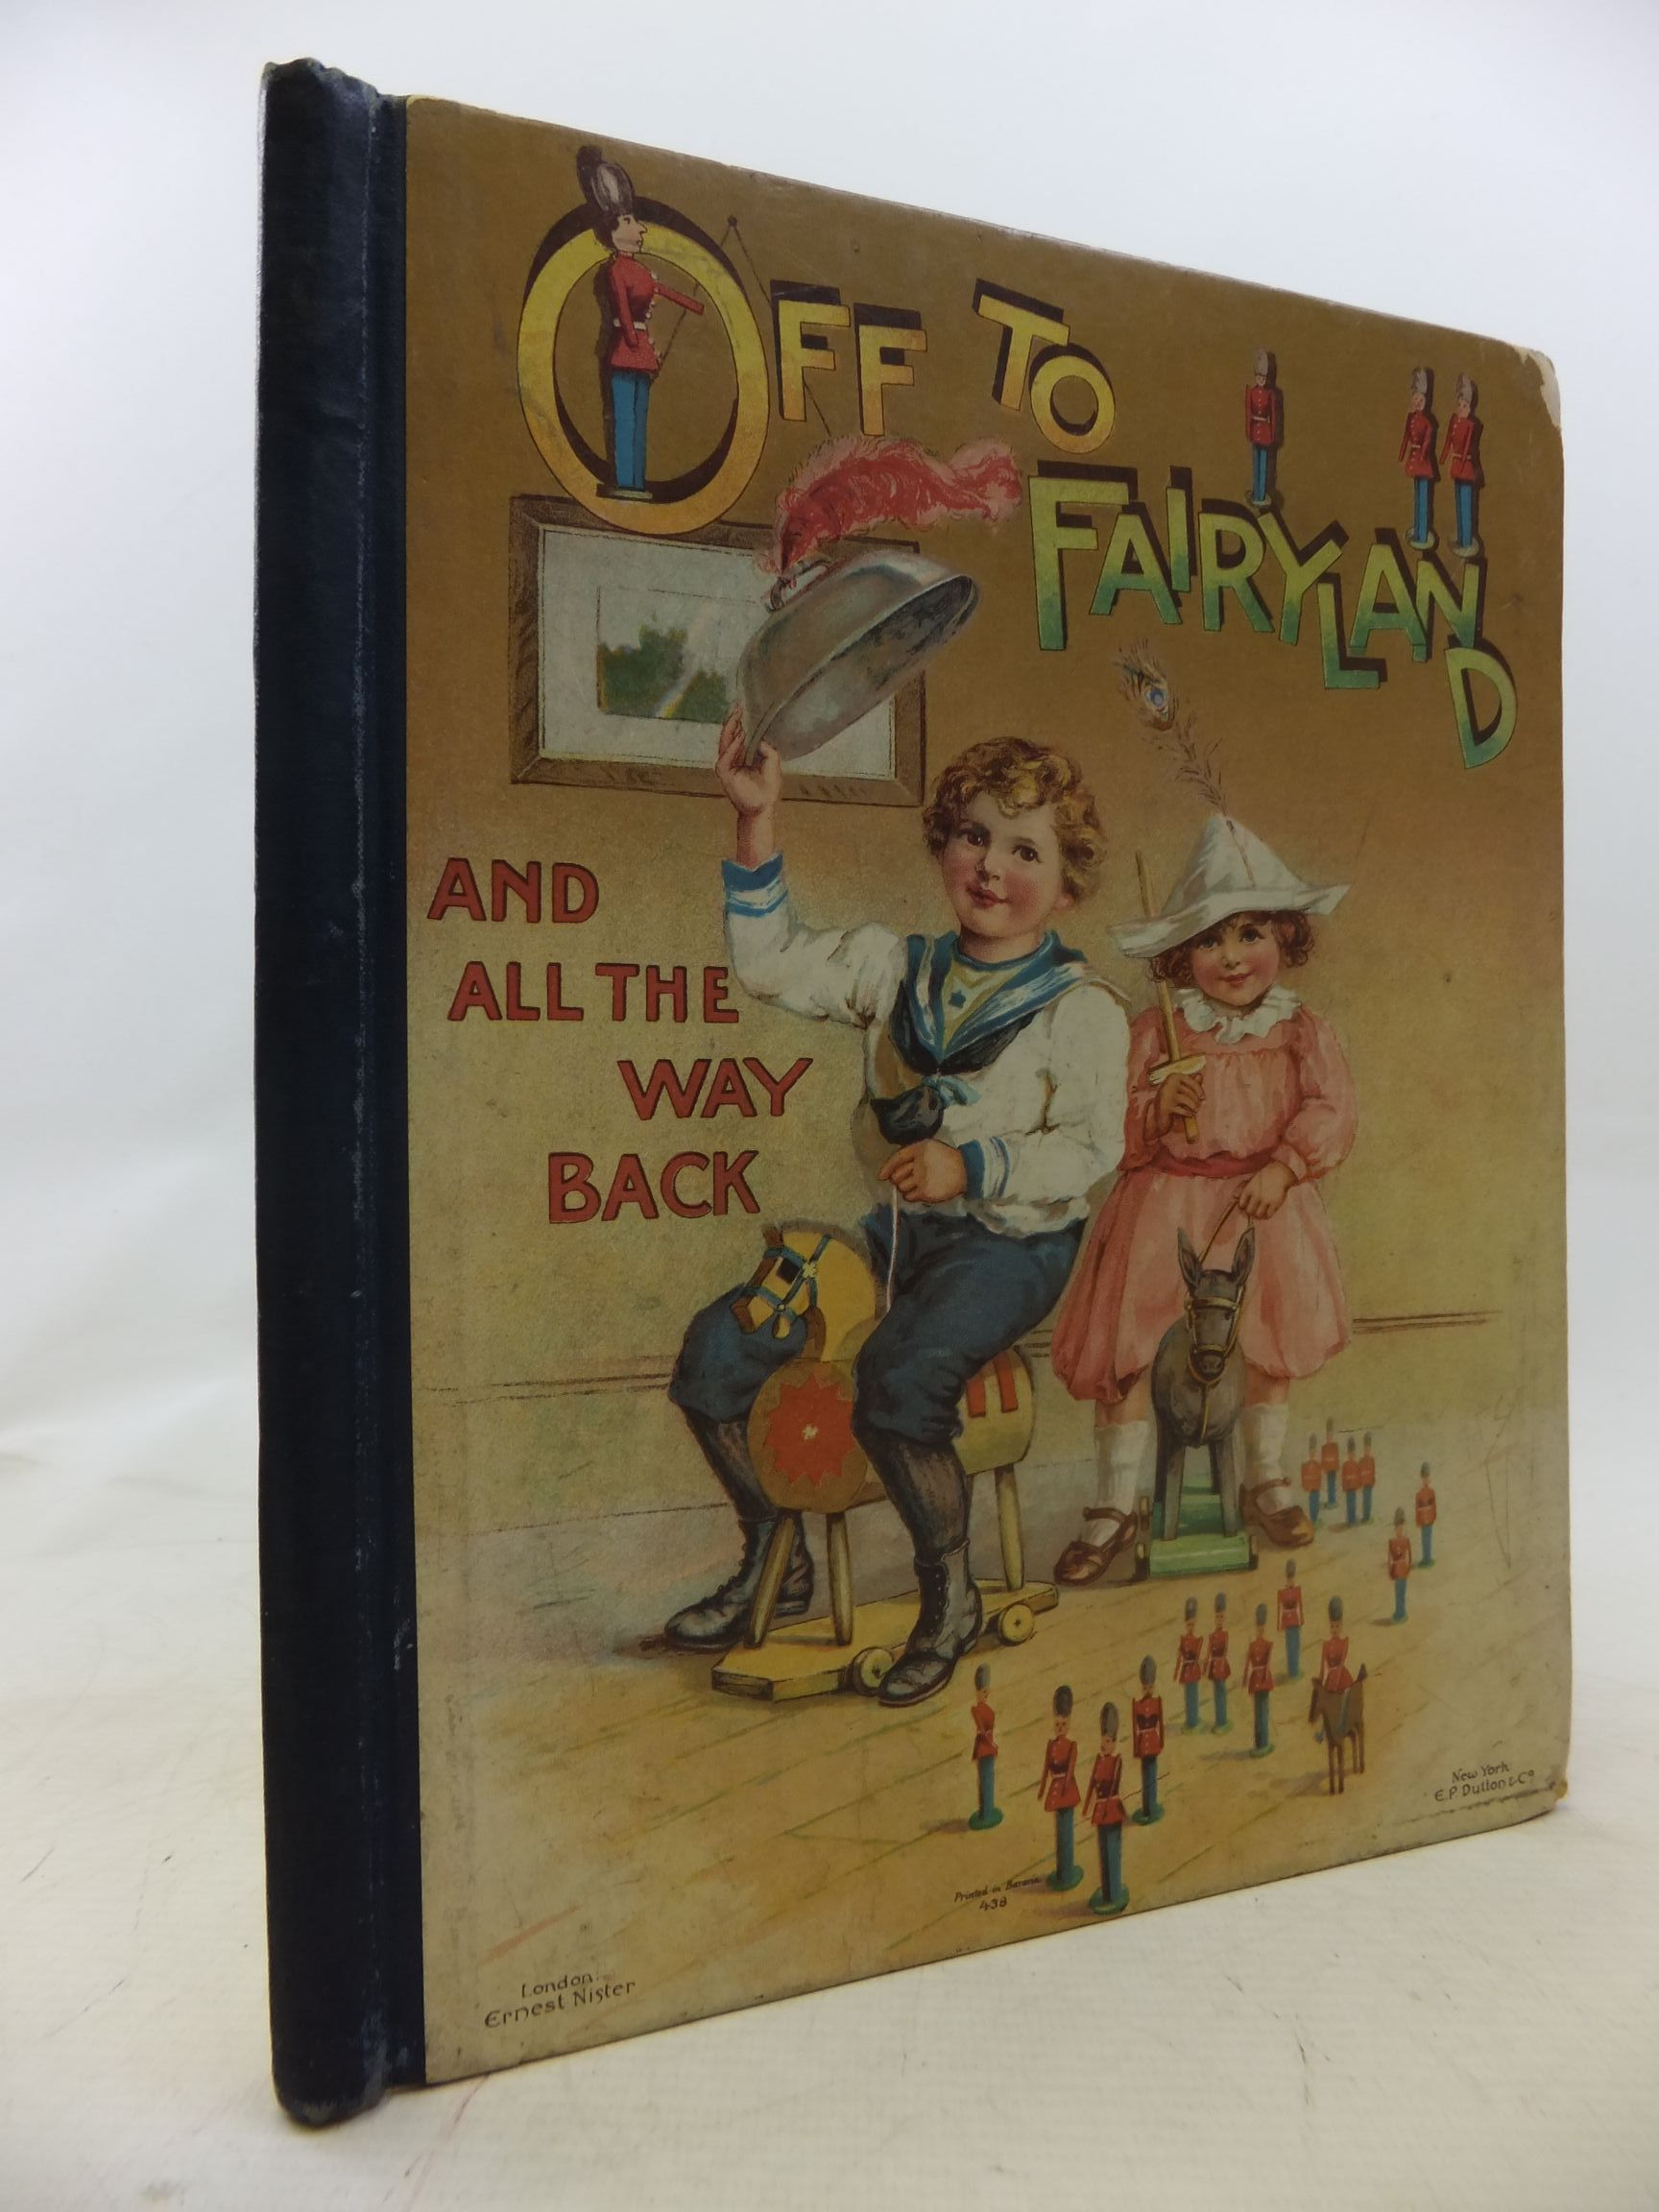 Photo of OFF TO FAIRYLAND published by Ernest Nister, E.P. Dutton & Co. (STOCK CODE: 1711823)  for sale by Stella & Rose's Books